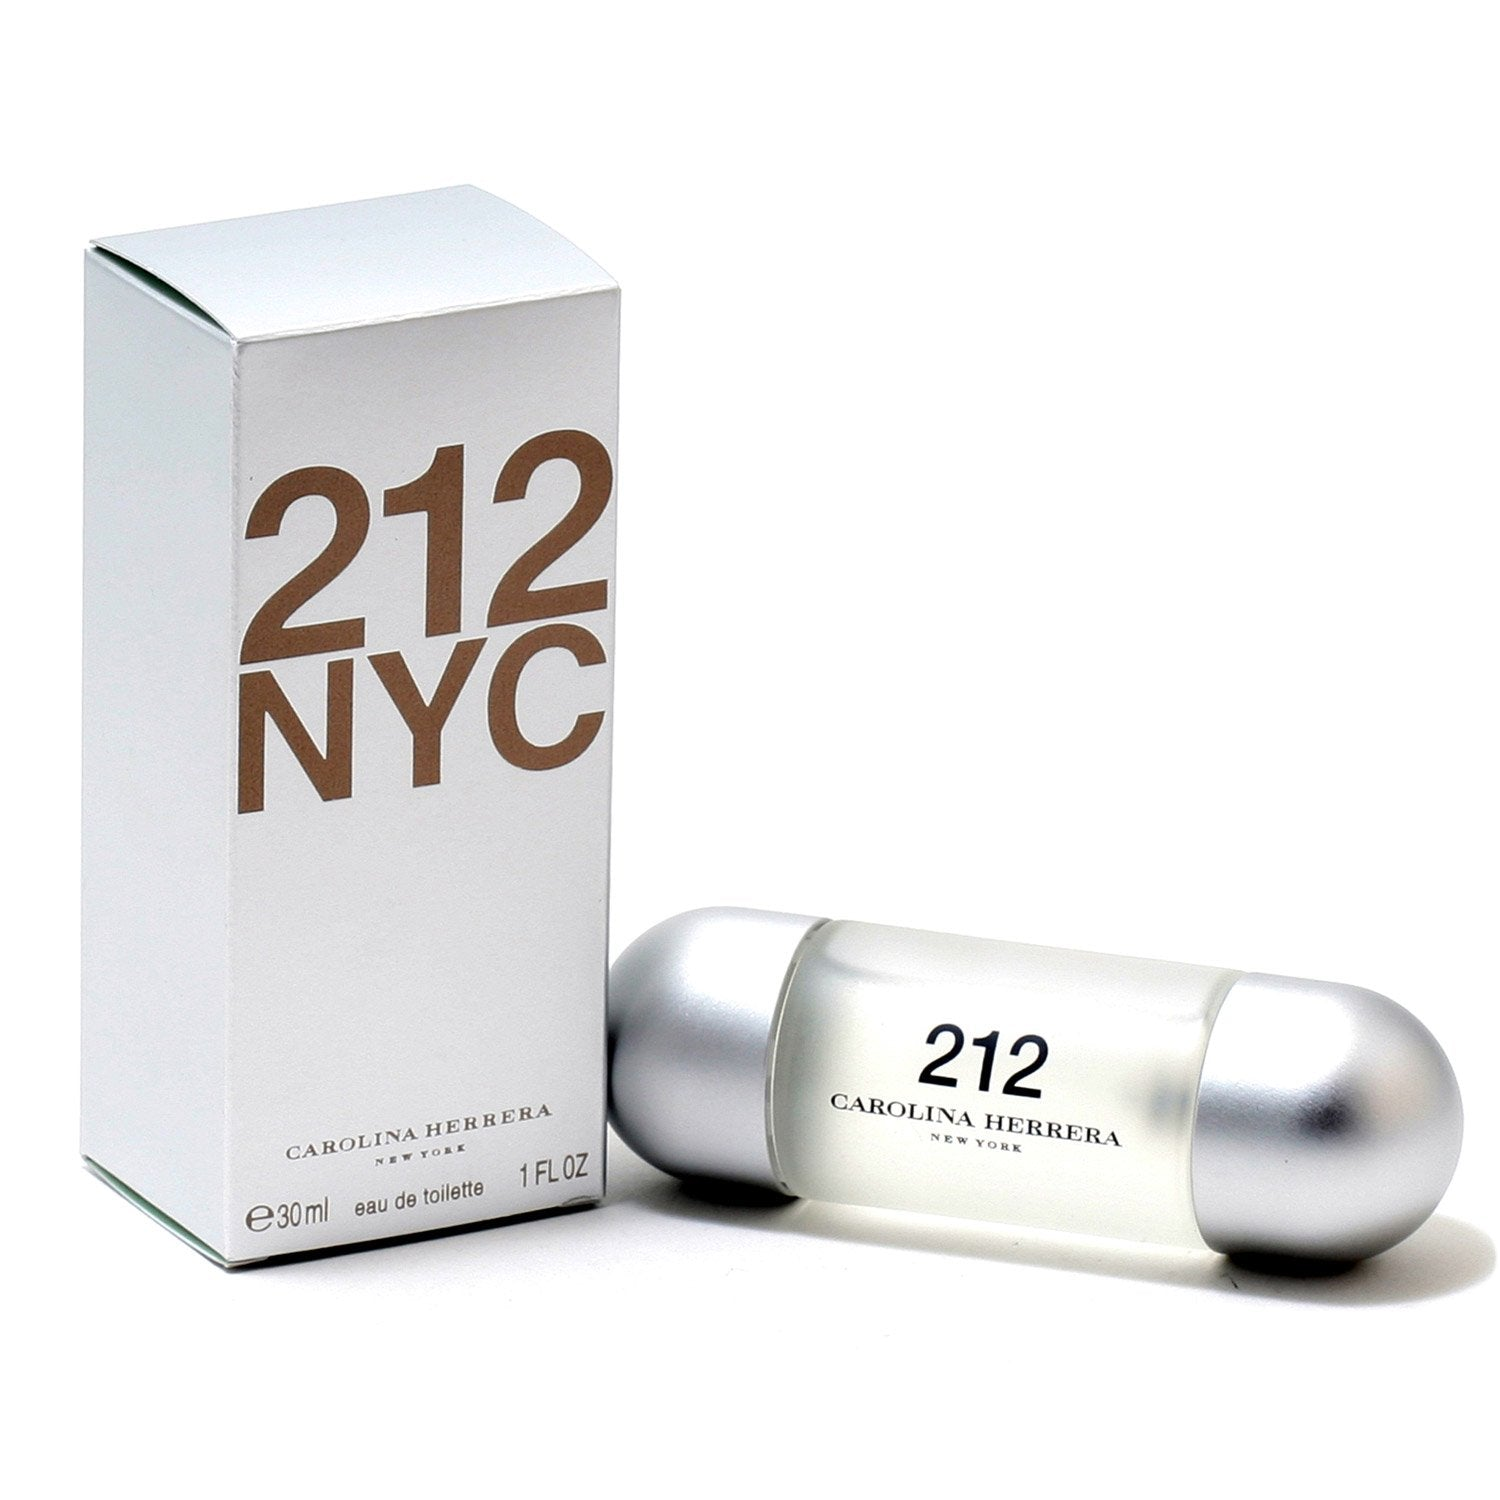 Perfume - 212 NYC FOR WOMEN BY CAROLINA HERRERA - EAU DE TOILETTE SPRAY